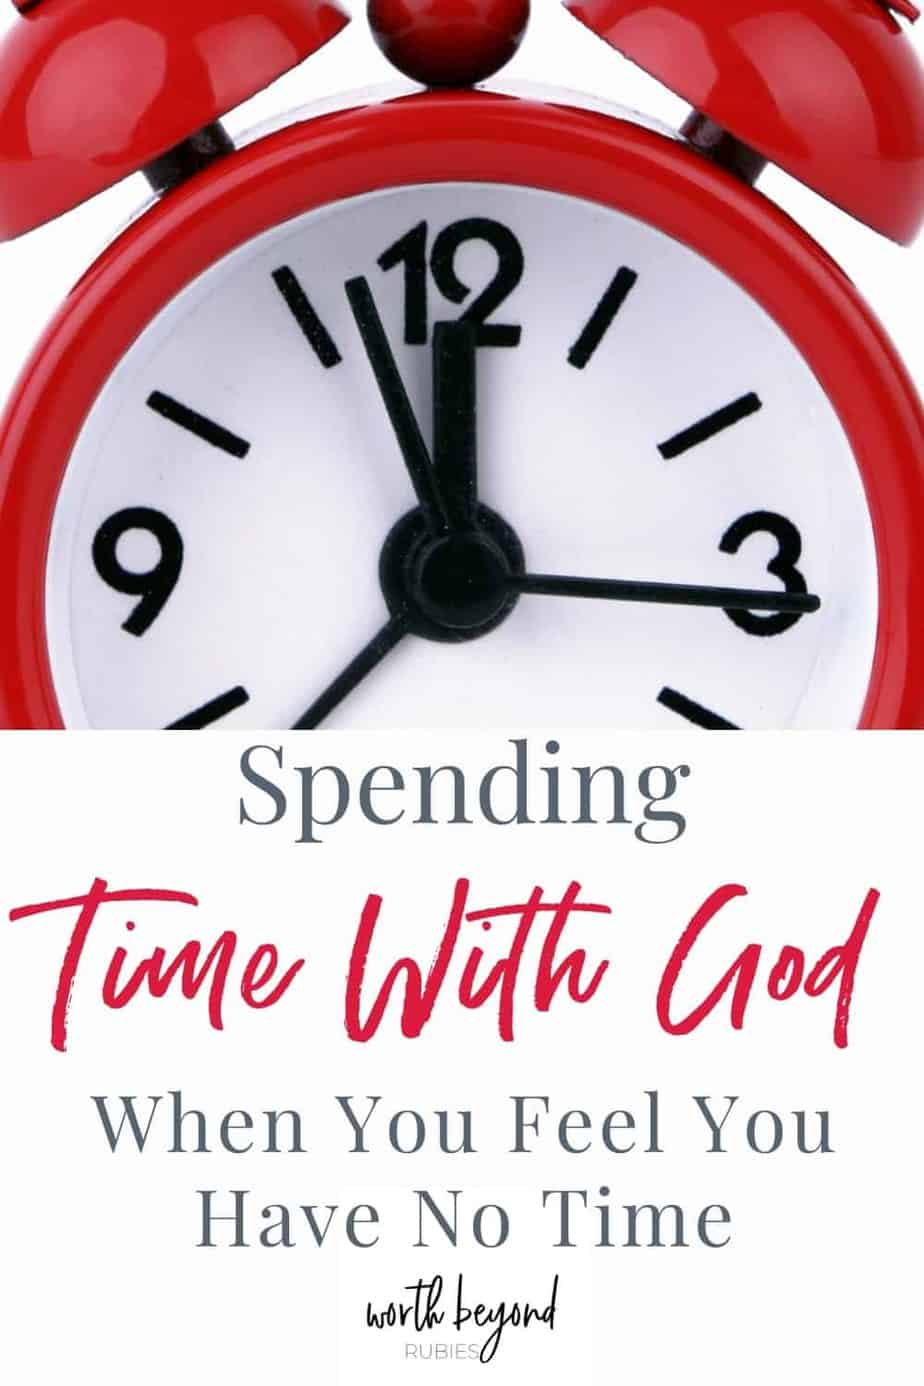 An image of a red alarm clock with a text overlay that says Spending Time With God When You Feel You Have No Time